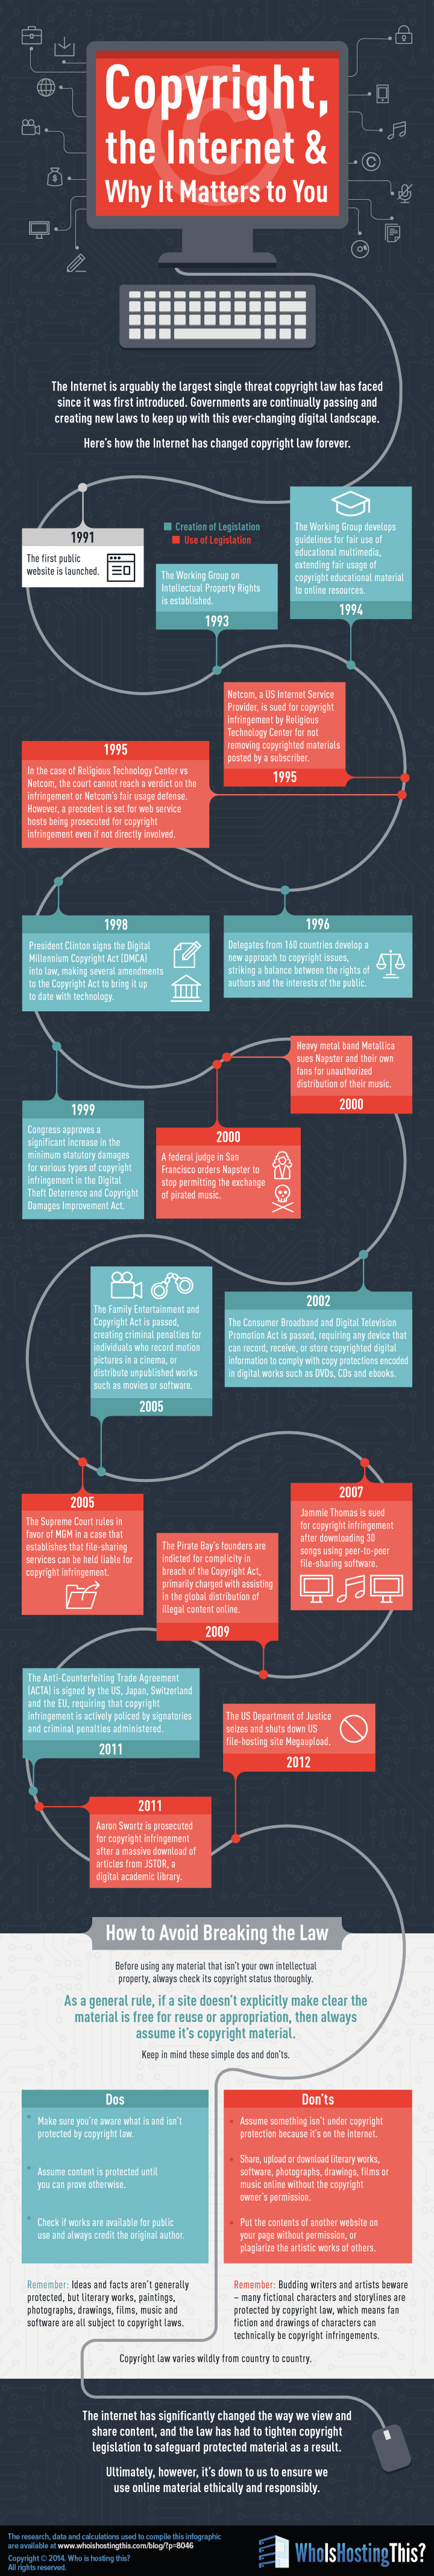 Copyright, the internet, and why it matters to you - infographic